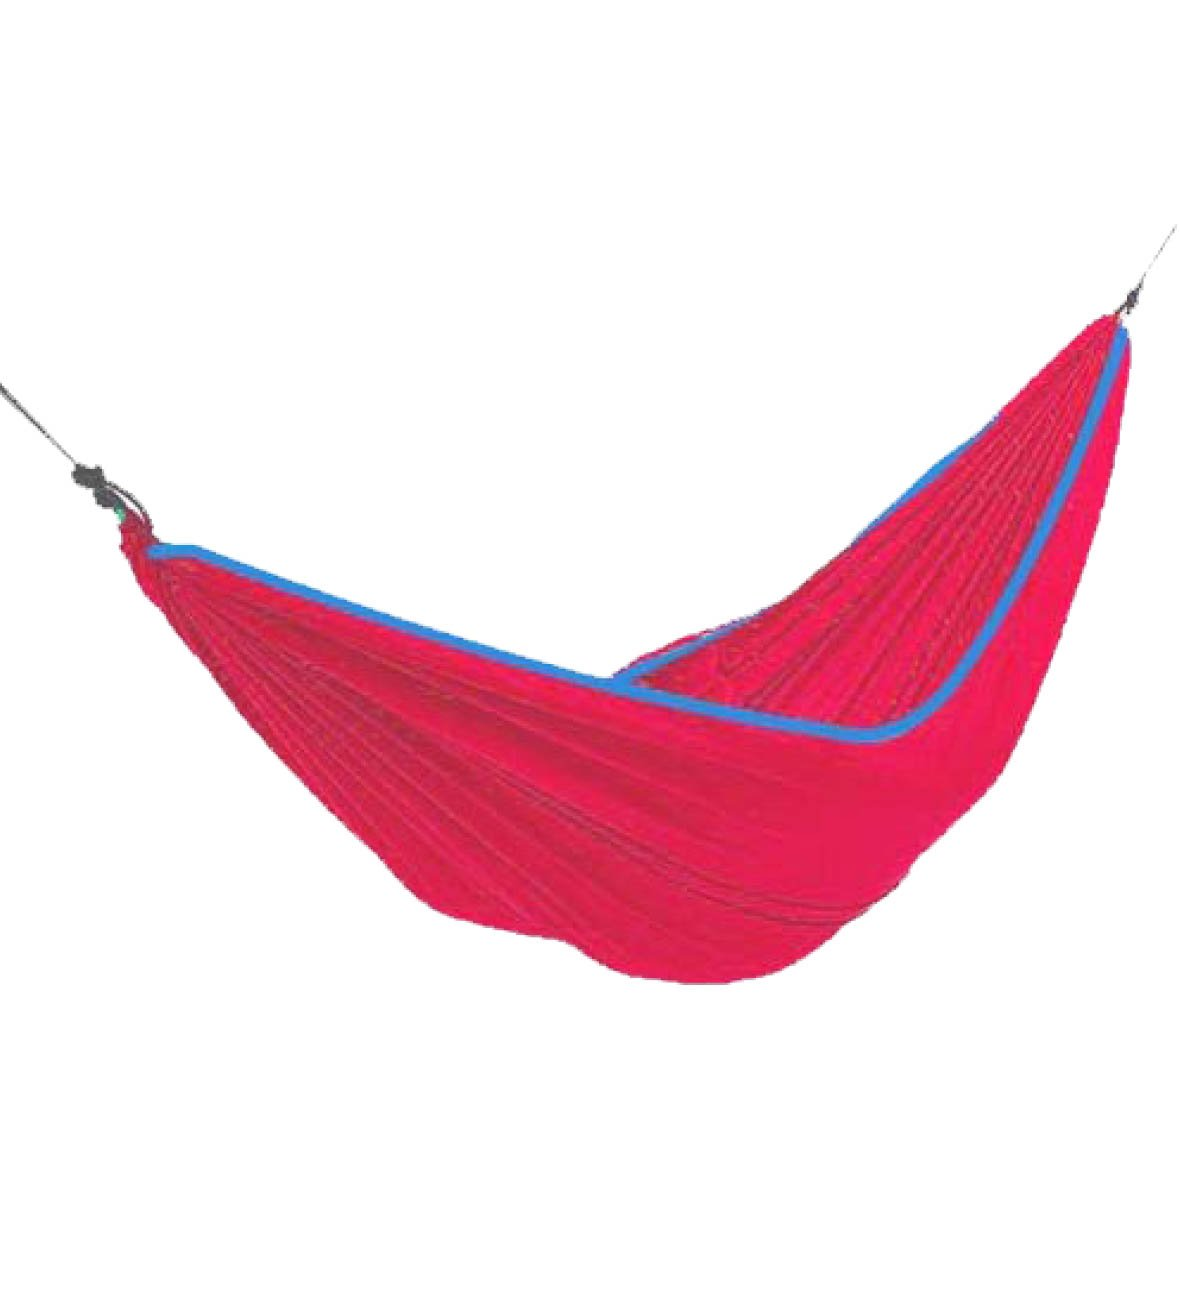 Simple Spring, Summer, Autumn Used Portable Polyester Multi functional Red Hammock For Backpacking, Camping, Travel, Bench, Yard and Garden. Easy to storage and carry